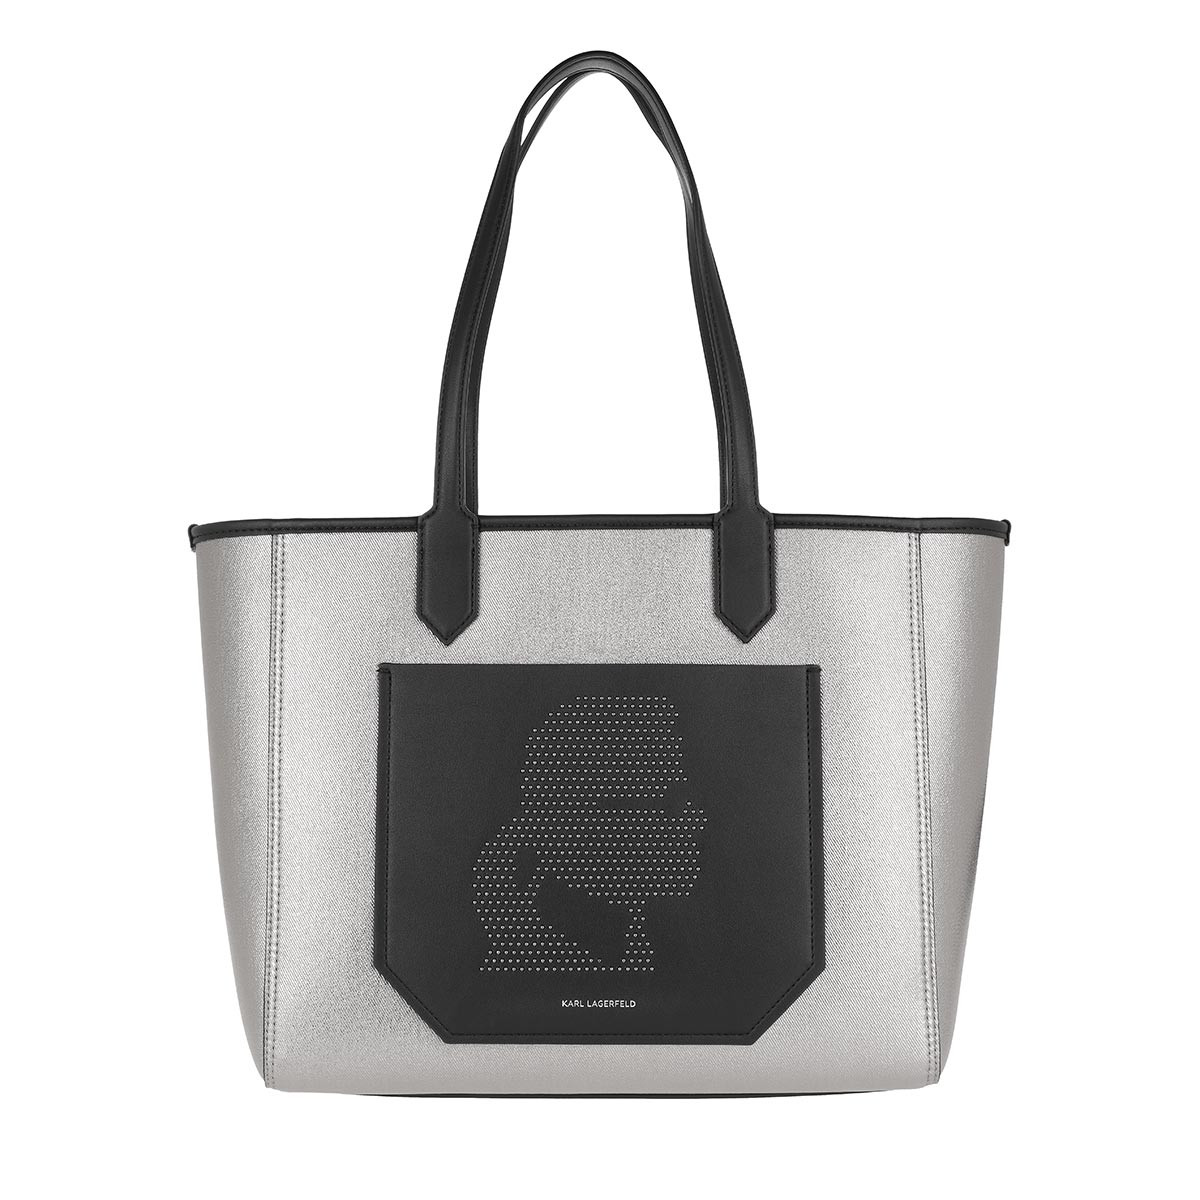 Karl Lagerfeld Shopper - Journey Tote Nylon Metallic Black - in grau - für Damen